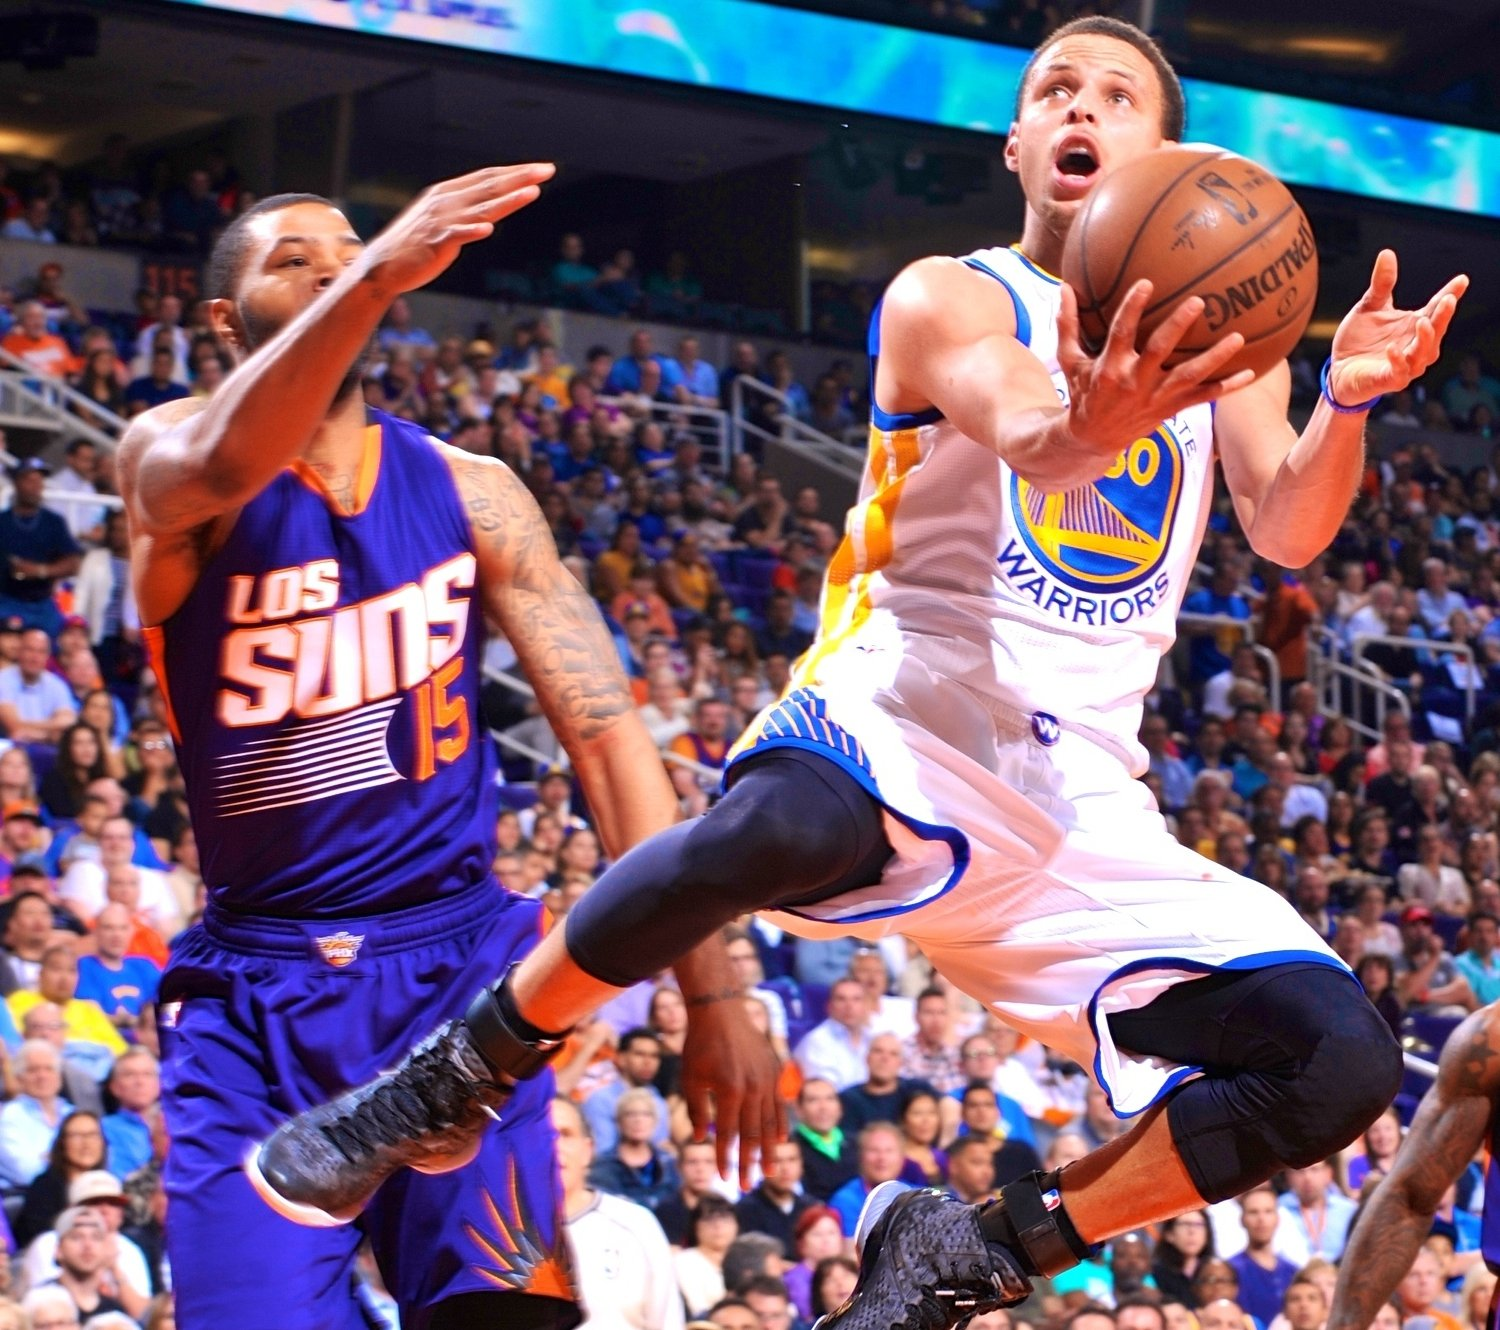 Lakers Vs Warriors Live Stream For Free